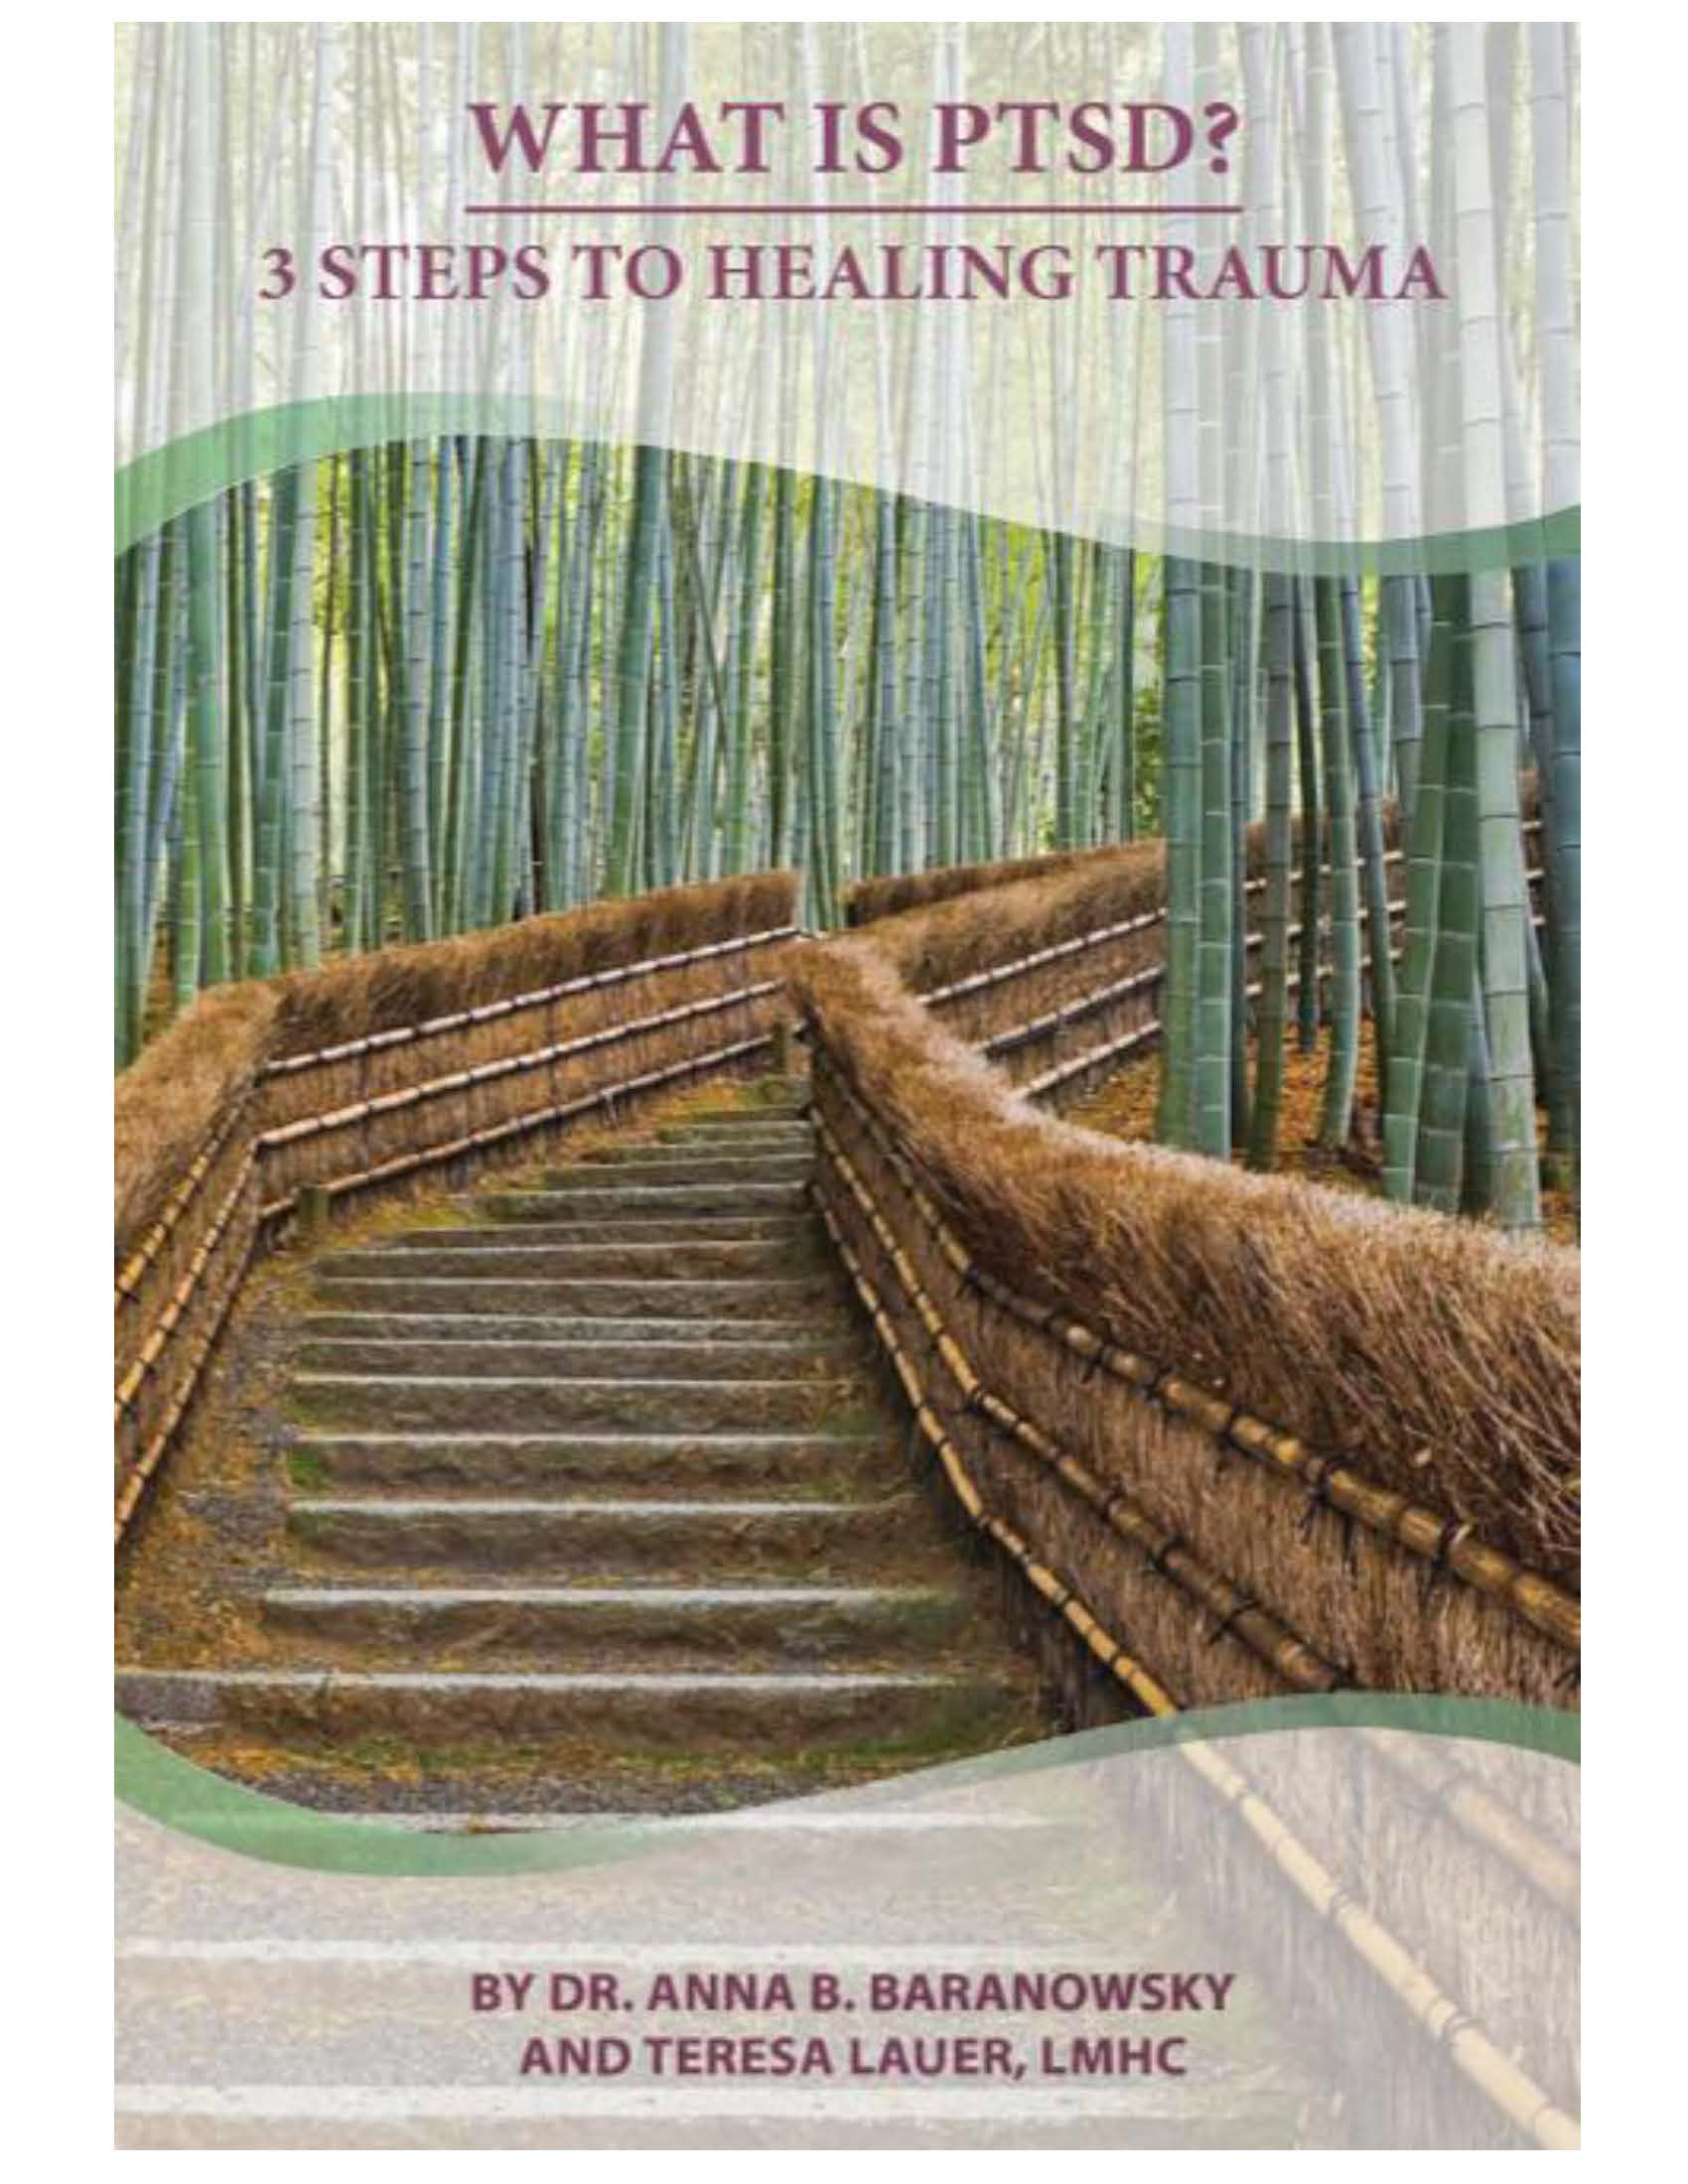 What is PTSD? 3 Steps to Healing Trauma By: Dr. Anna Baranowsky,Teresa Lauer